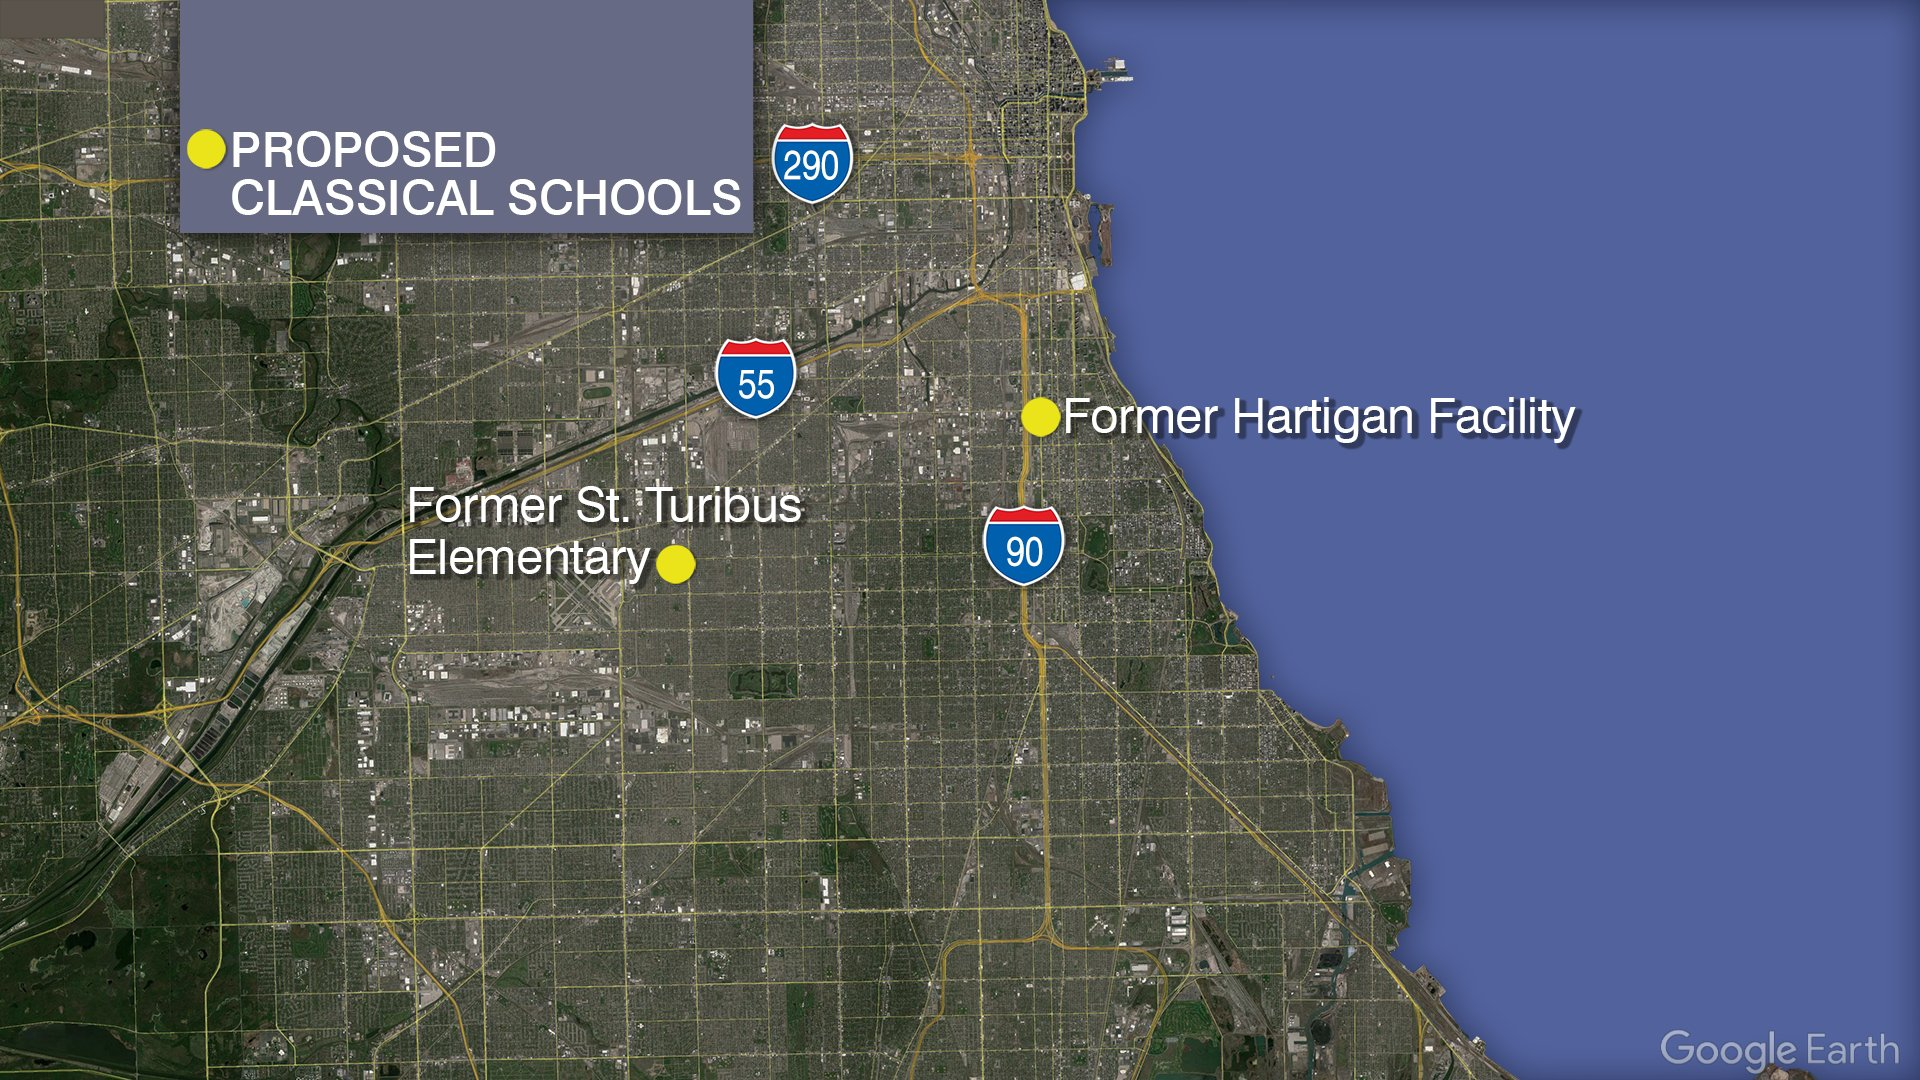 Cps Announces Plans For 2 New Elementary Schools Chicago News Wttw